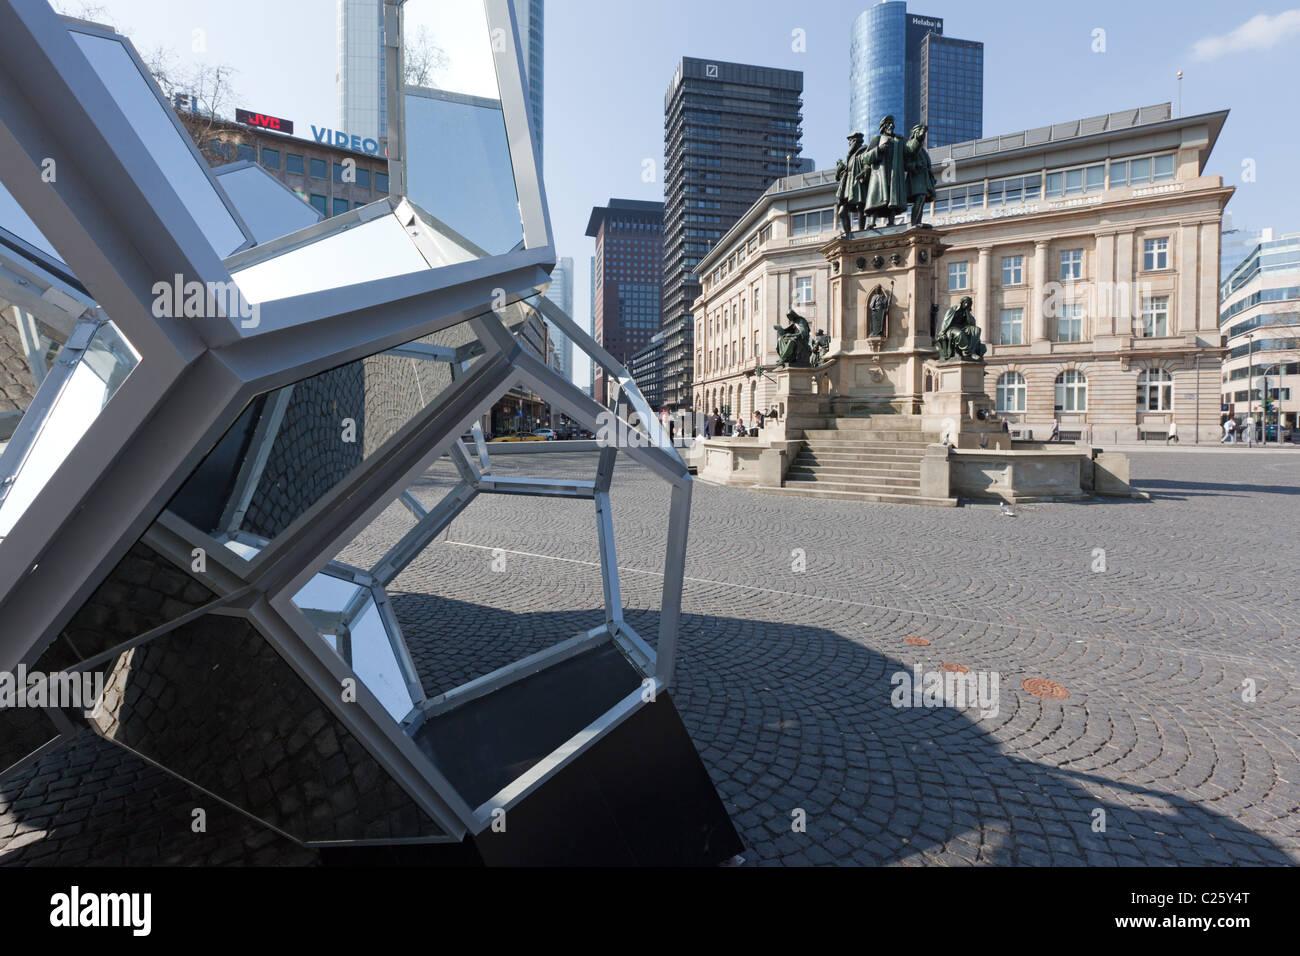 Two art works with more than 150years between them at Goetheplatz, Frankfurt, with the city skyline behind - Stock Image